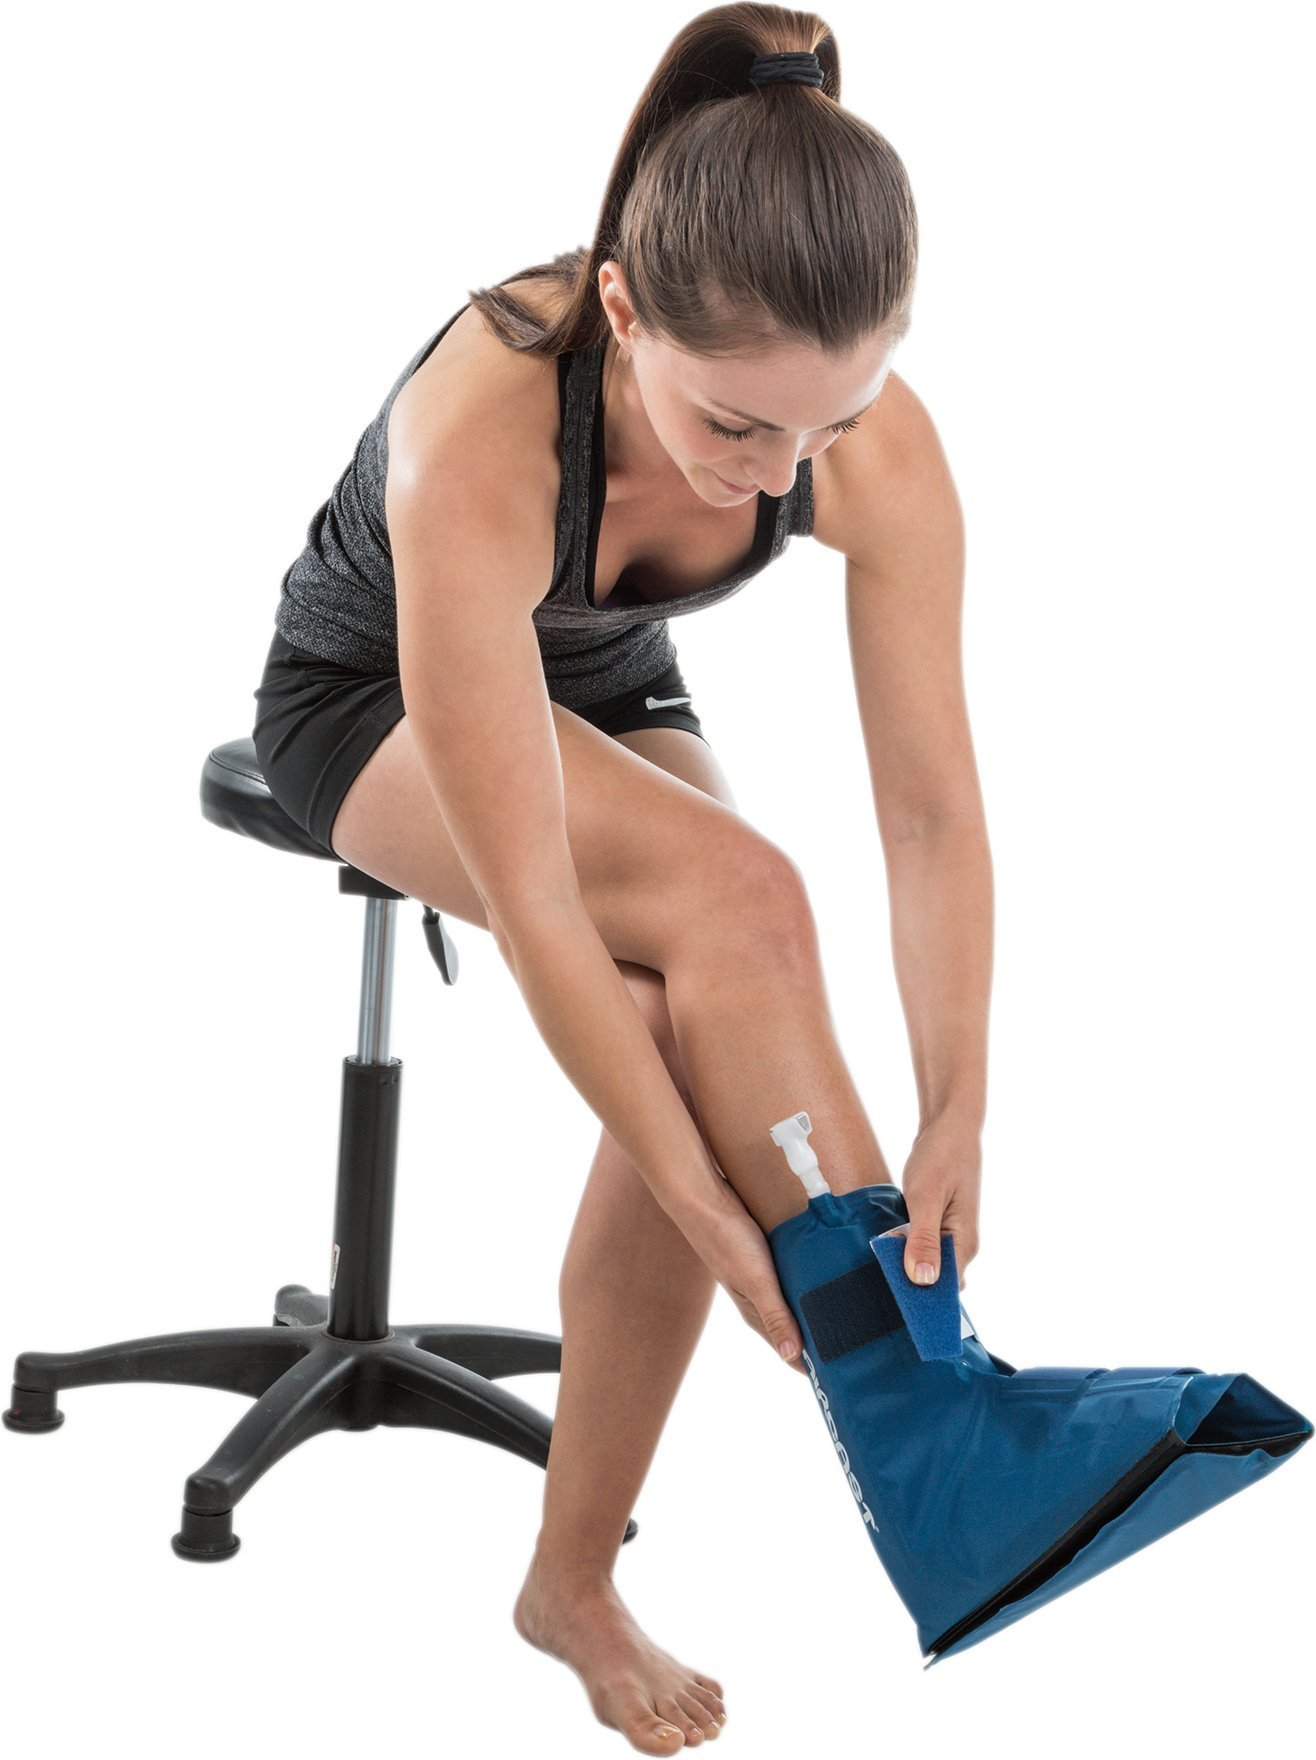 Aircast Cryo/Cuff Cold Therapy: Ankle Cryo/Cuff with Non-Motorized (Gravity-Fed) Cooler, One Size Fits Most by Aircast (Image #2)